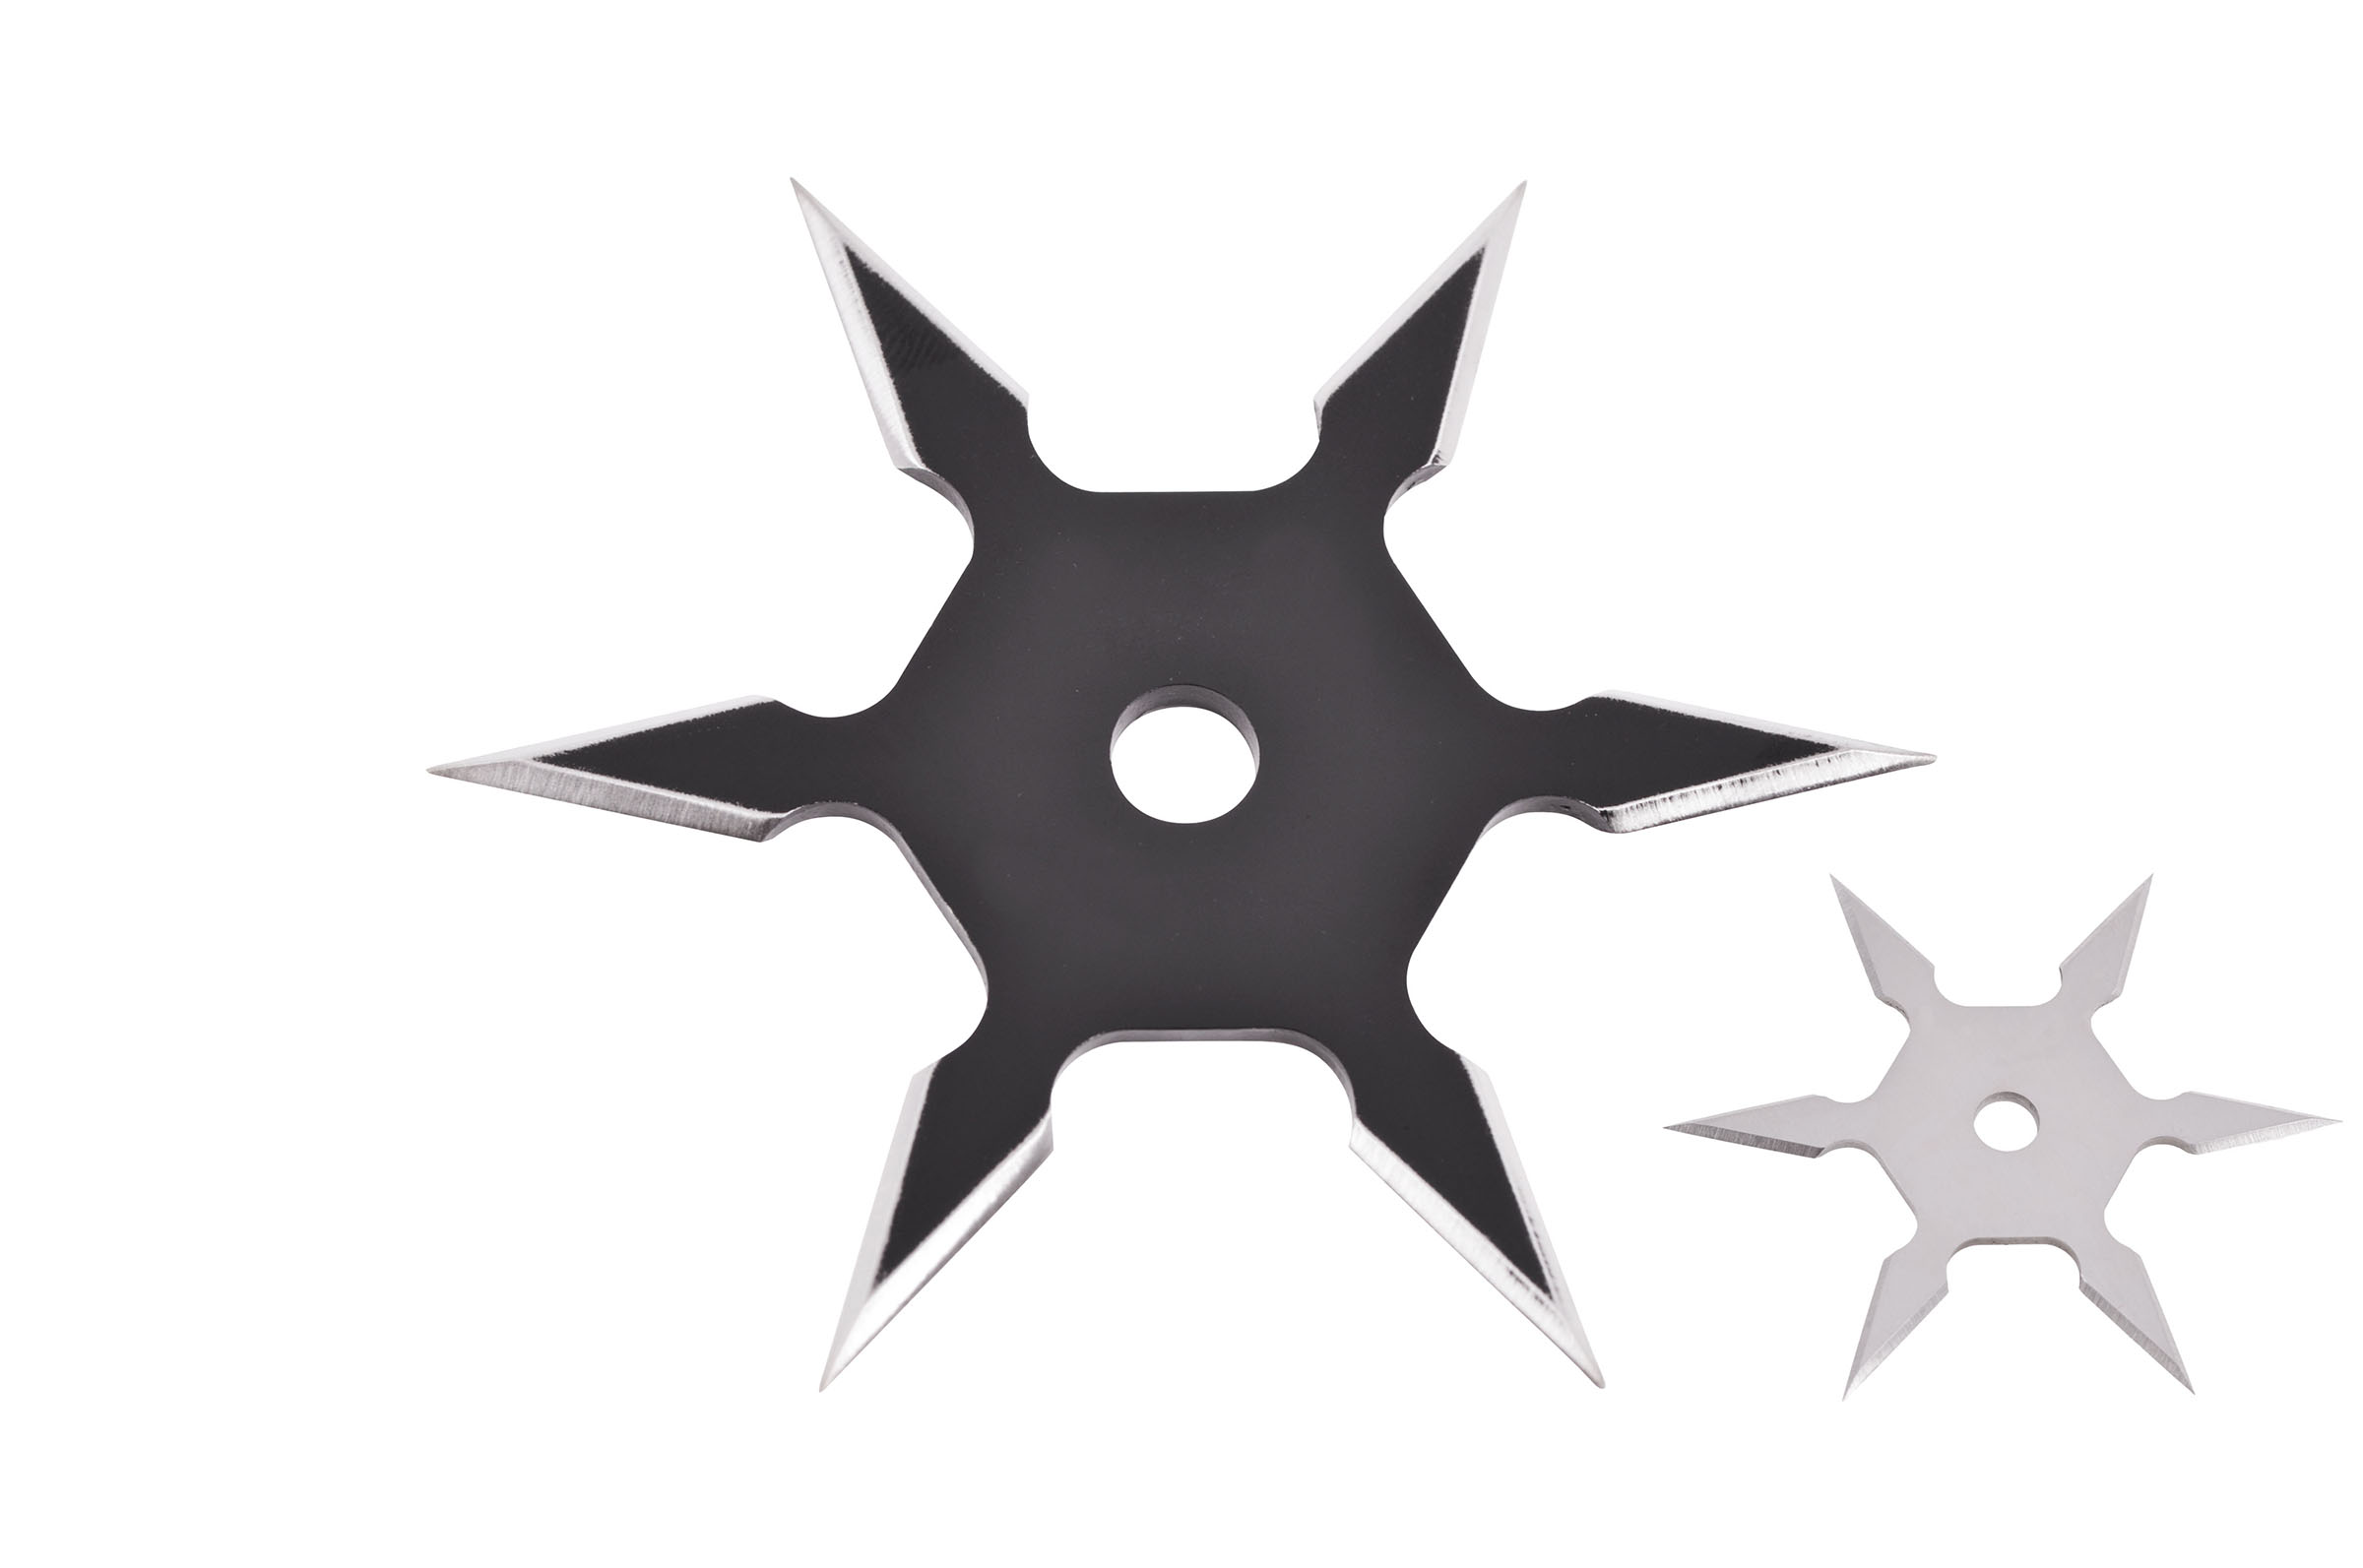 Wood and Silver Ring with 3 Blade Ninja Star Design